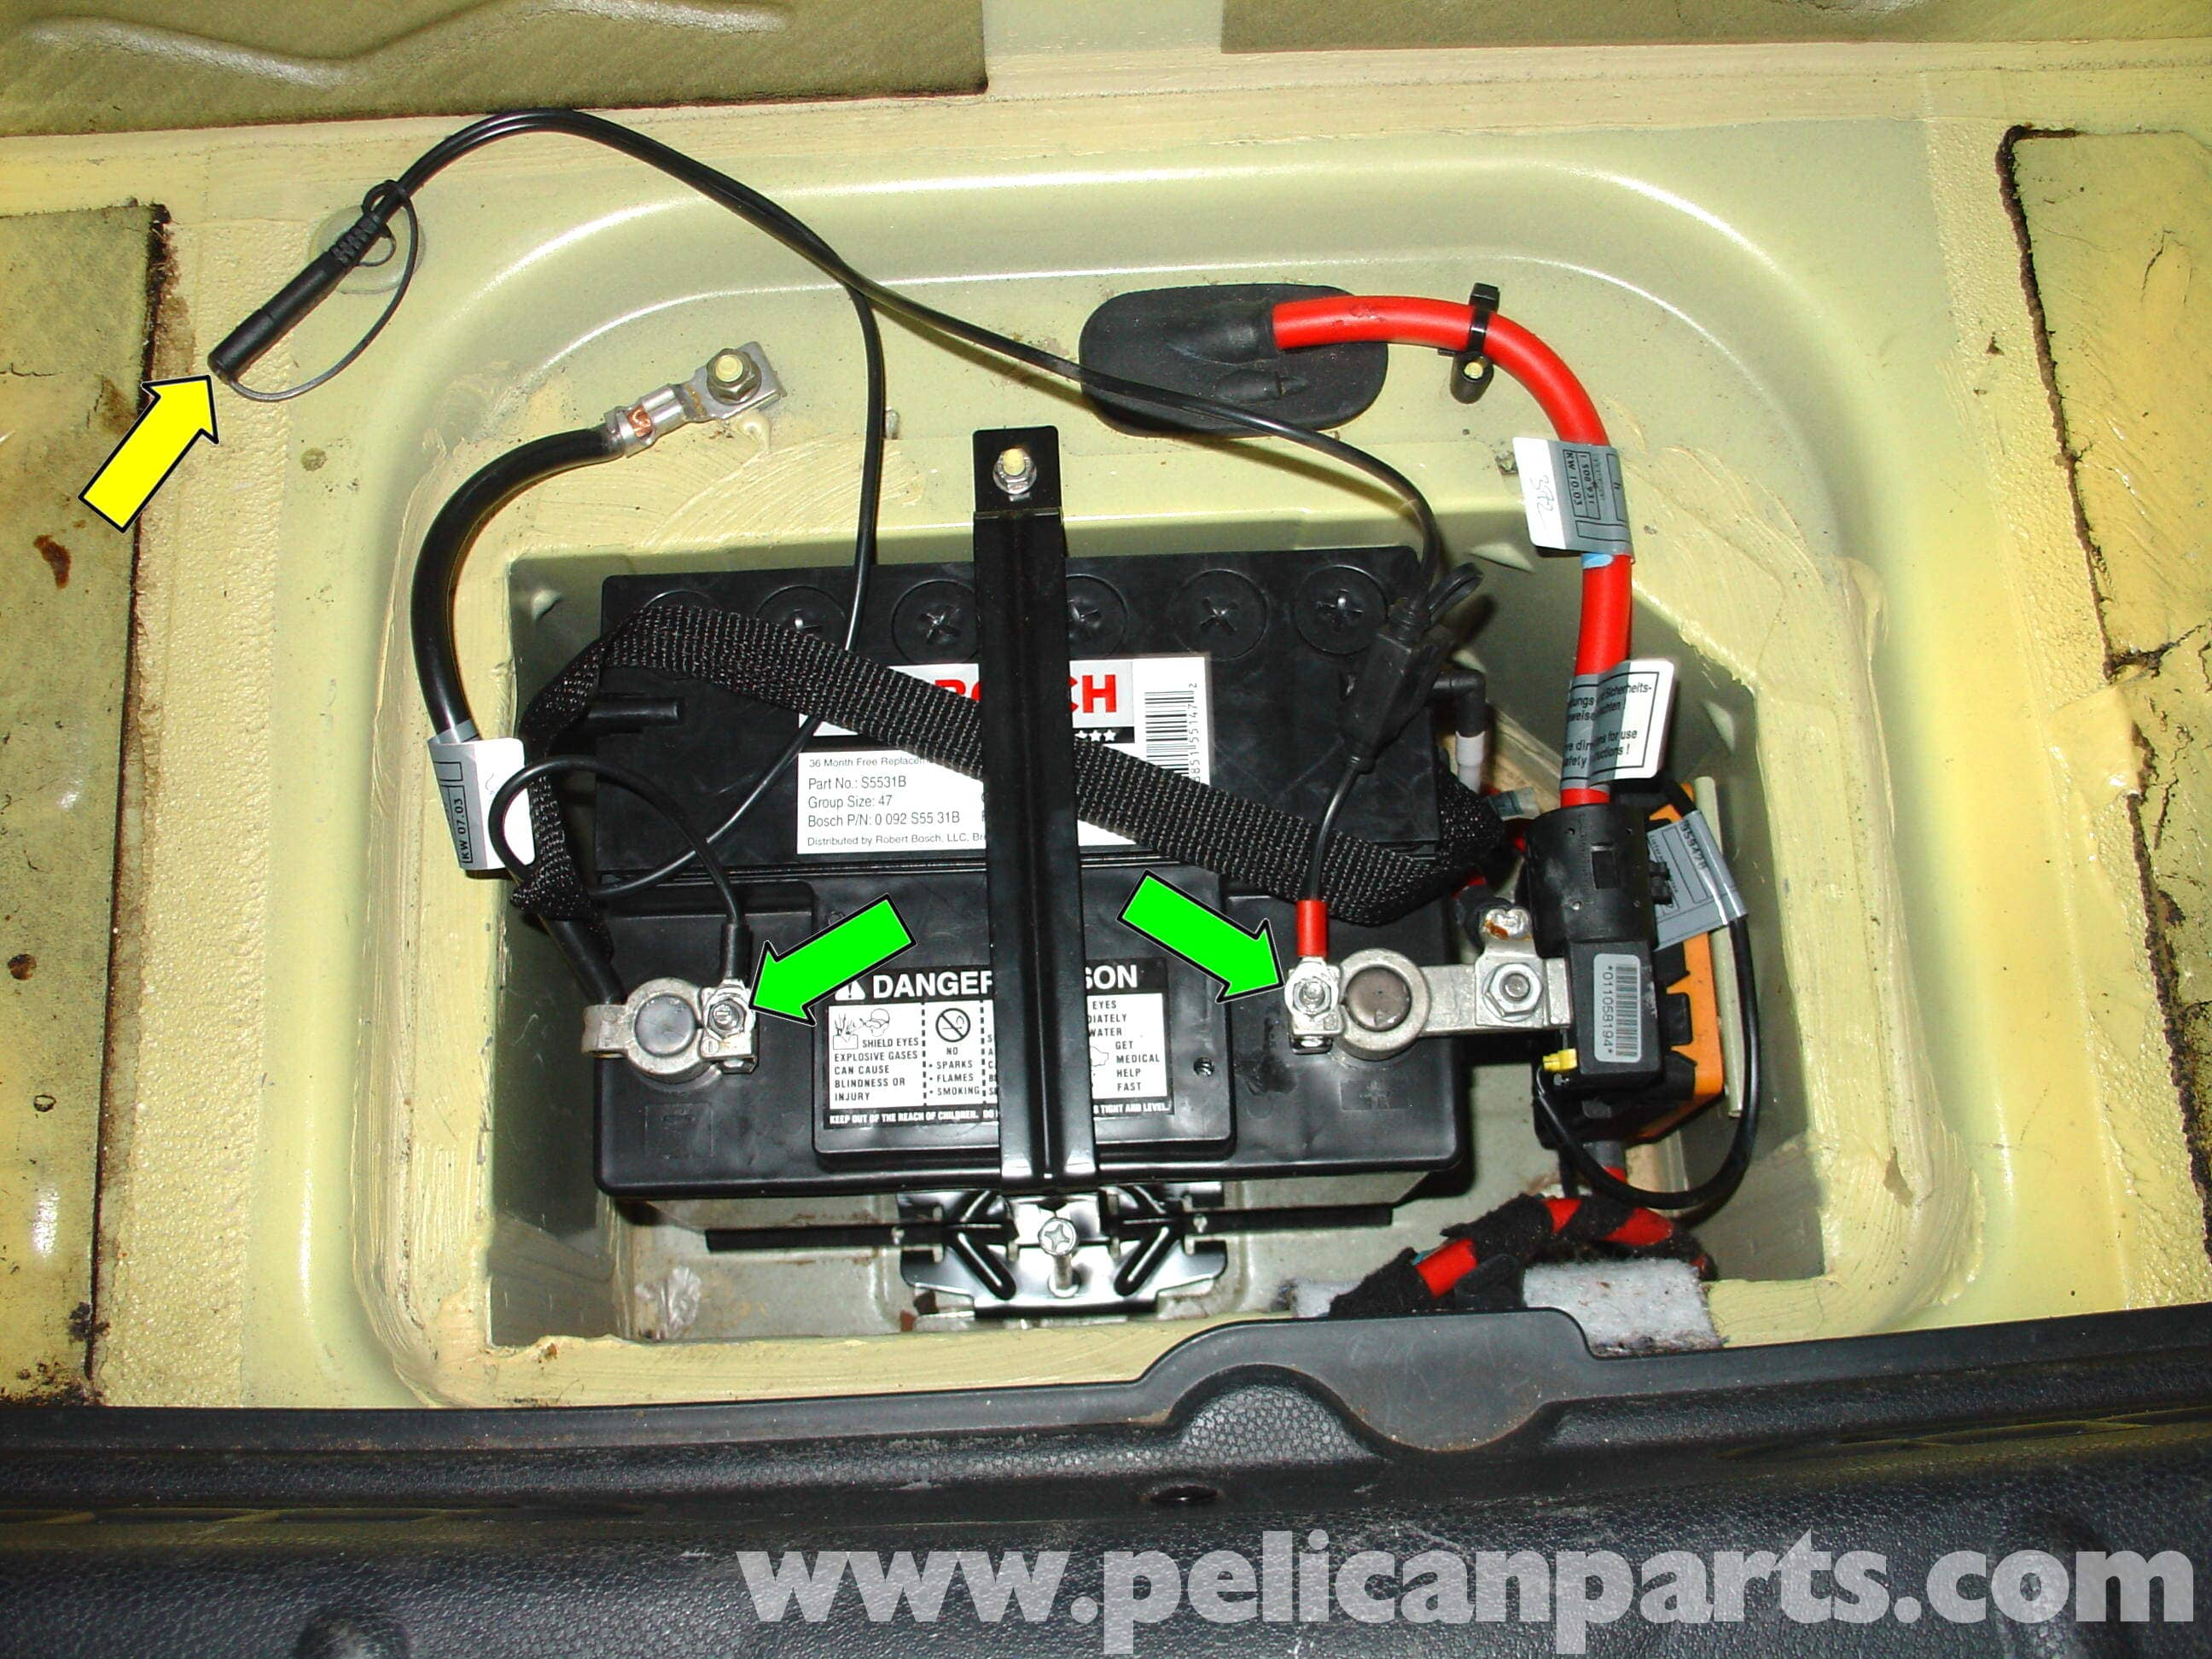 Mini Cooper Battery Replacement And Battery Tender